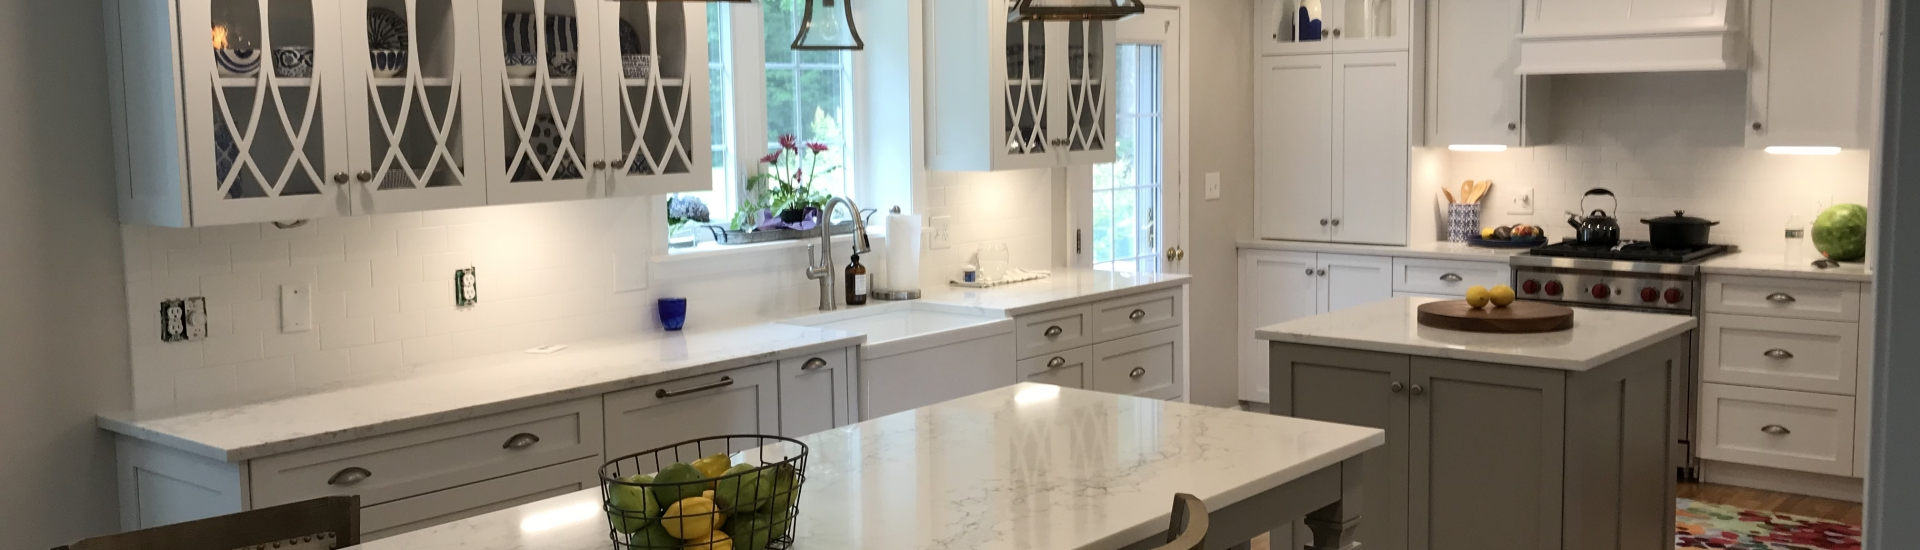 Superb Kitchen Cabinets By Curtis Cabinetry Curtis Cabinetry Home Interior And Landscaping Mentranervesignezvosmurscom